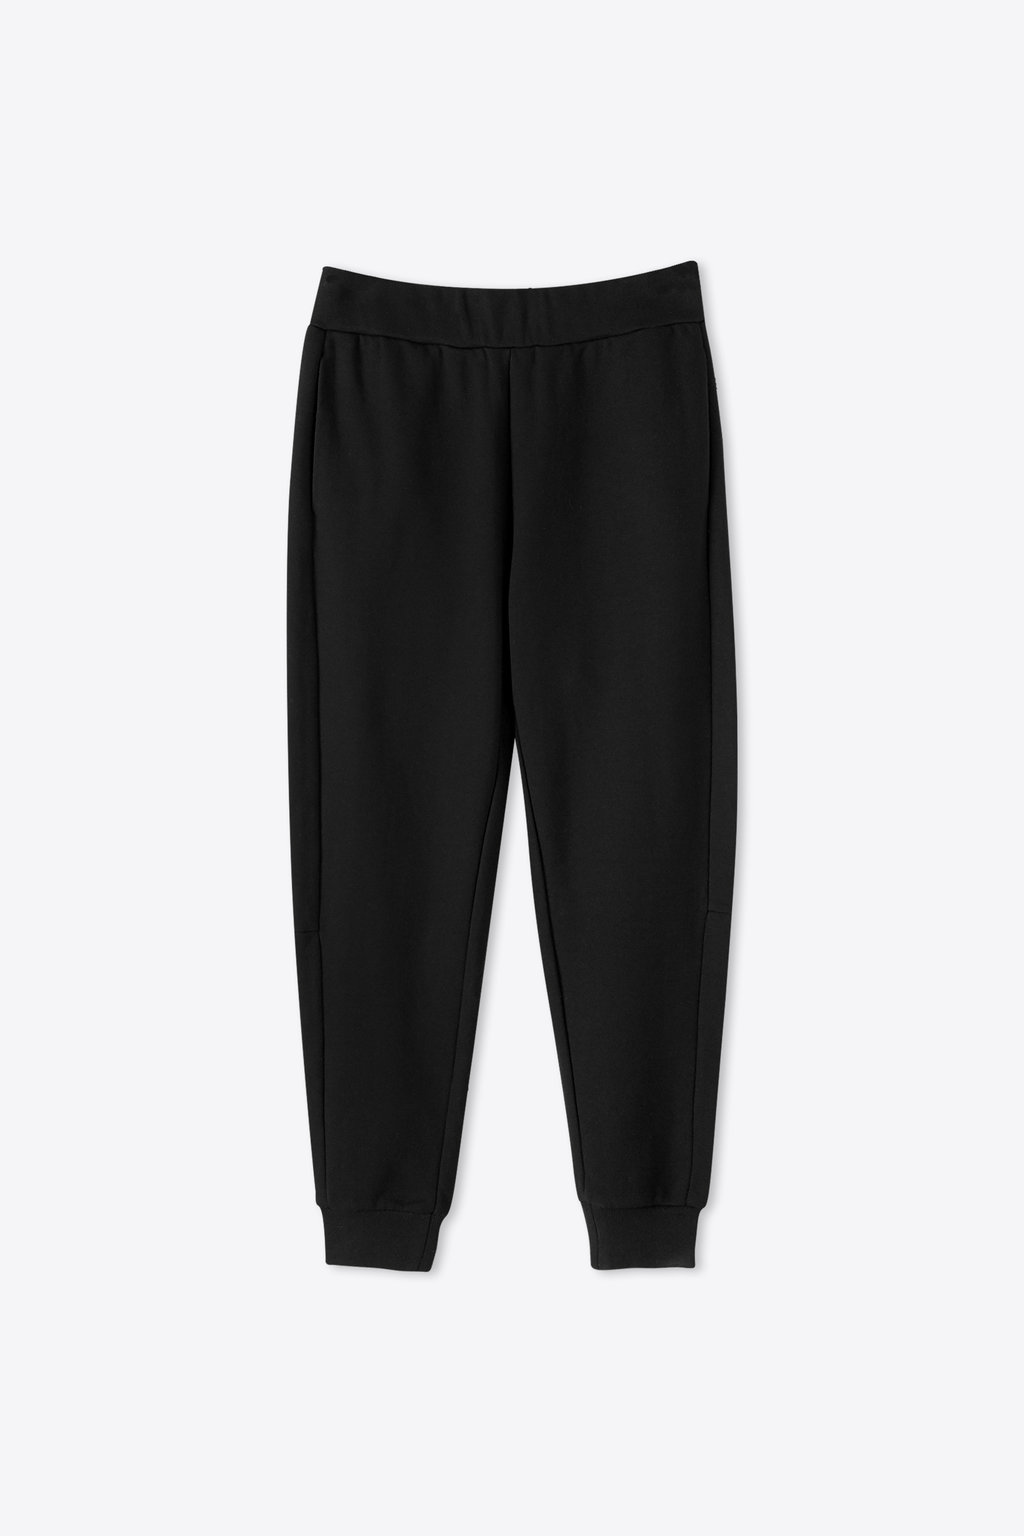 Sweatpant 2371 Black 5